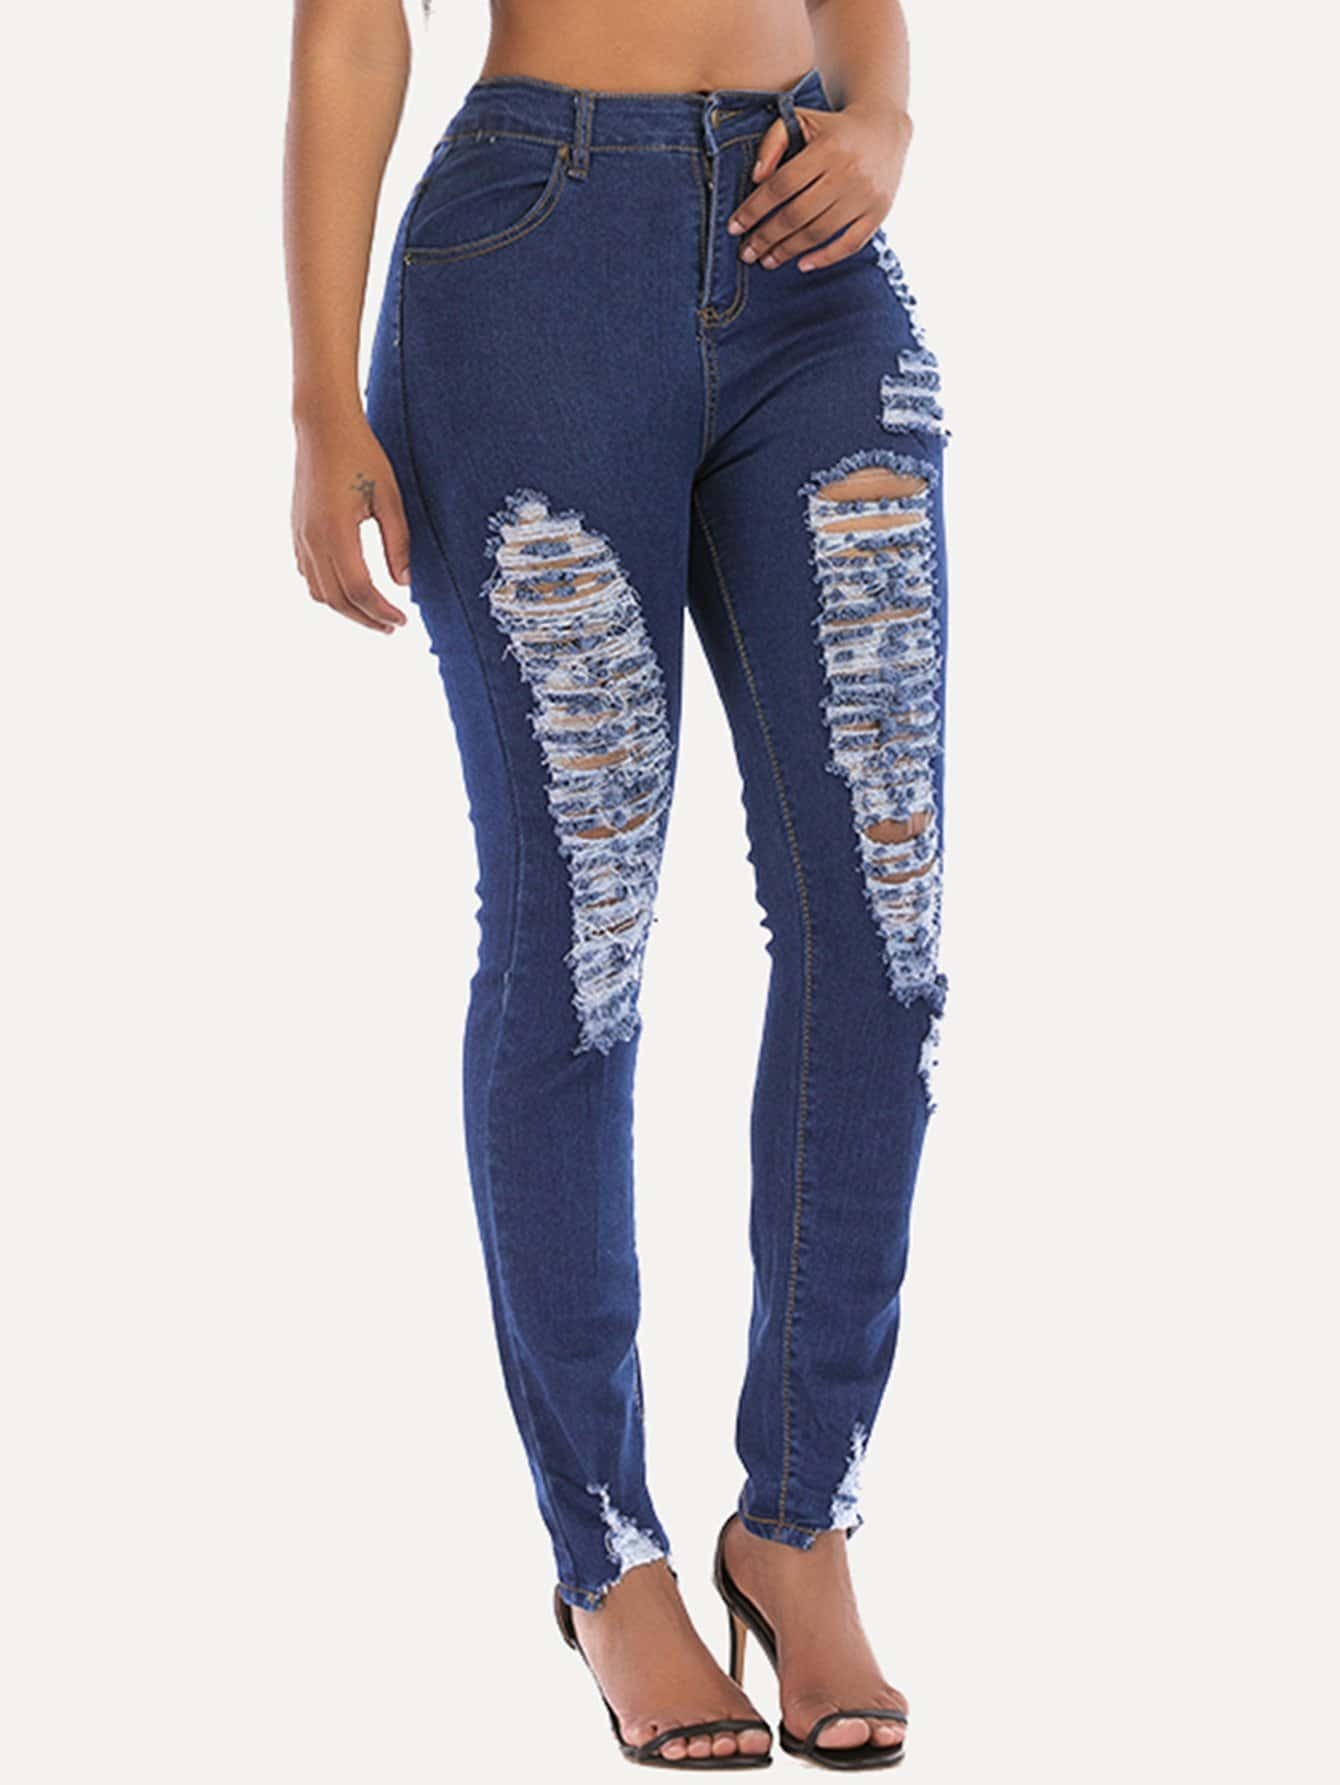 Skinny Ripped Jeans 2016 hole jeans free shipping woman distressed true denim skinny jean pencil pants trousers ripped jeans for women 031